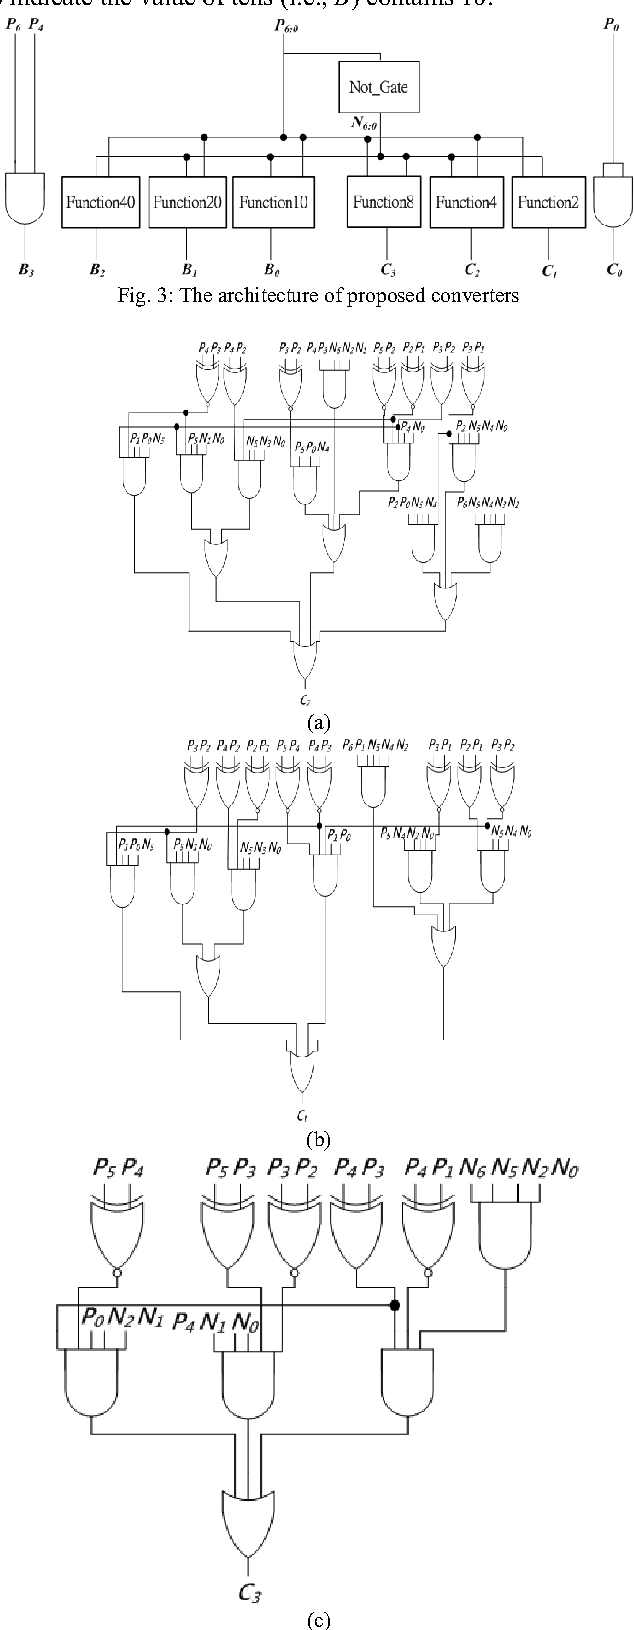 Fast Binary To Bcd Converters For Decimal Communications Using New Converter Pictures Recoding Circuits Semantic Scholar